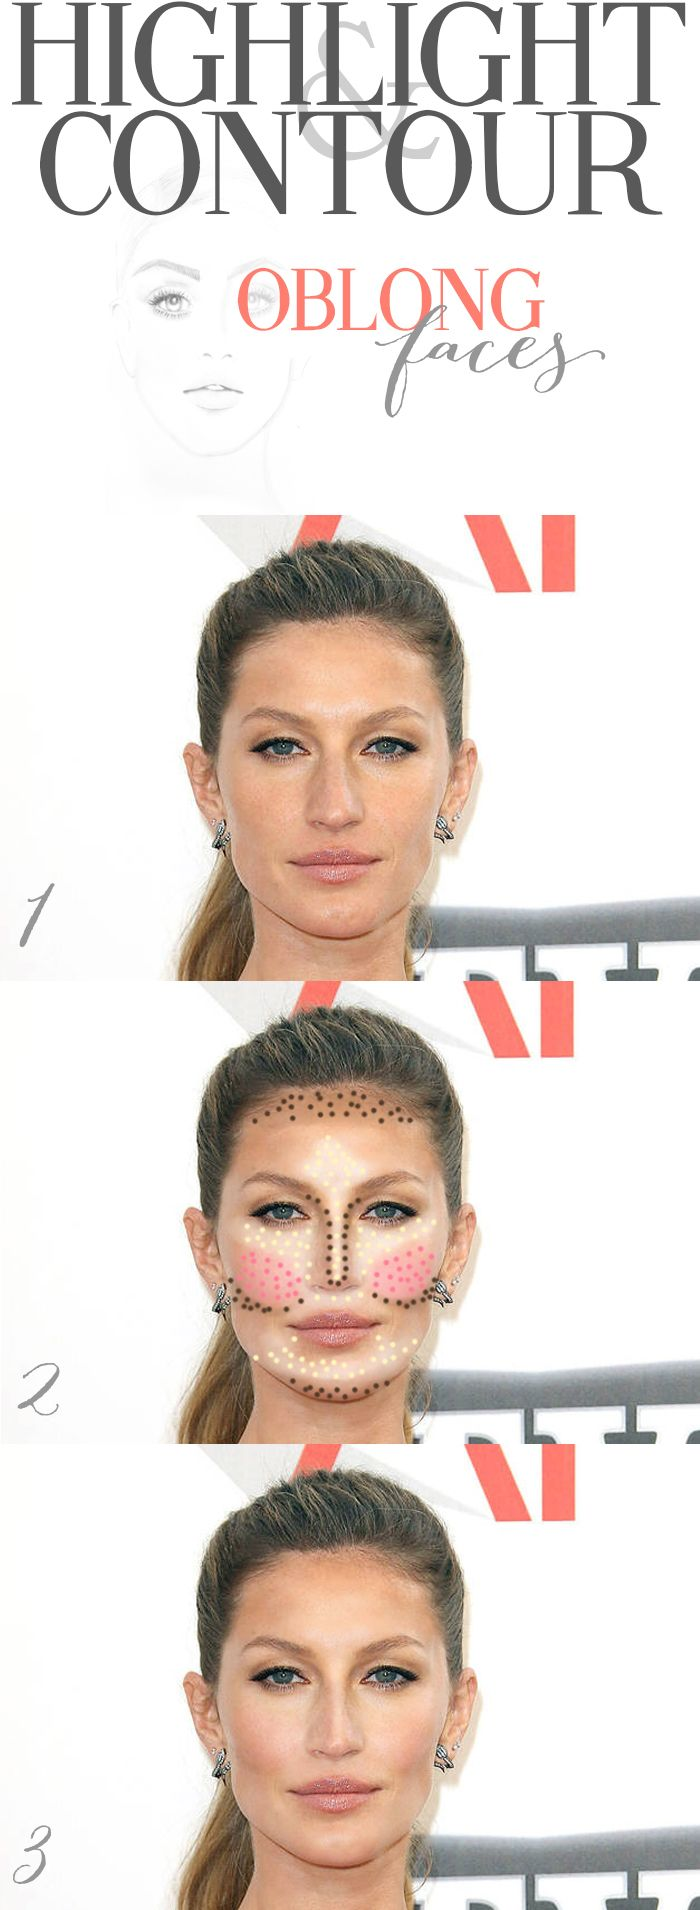 Highlighting and contouring for oblong faces.  Big difference to notice here is you want to be very careful not to contour the sides of your face and instead to shade right beneath your cheekbones and beneath the apples of your cheeks.  Another tip is to be careful with blush choices, use something vibrant or light in color as apposed to something dark so that it doesn't sink in your gorgeous cheeks!